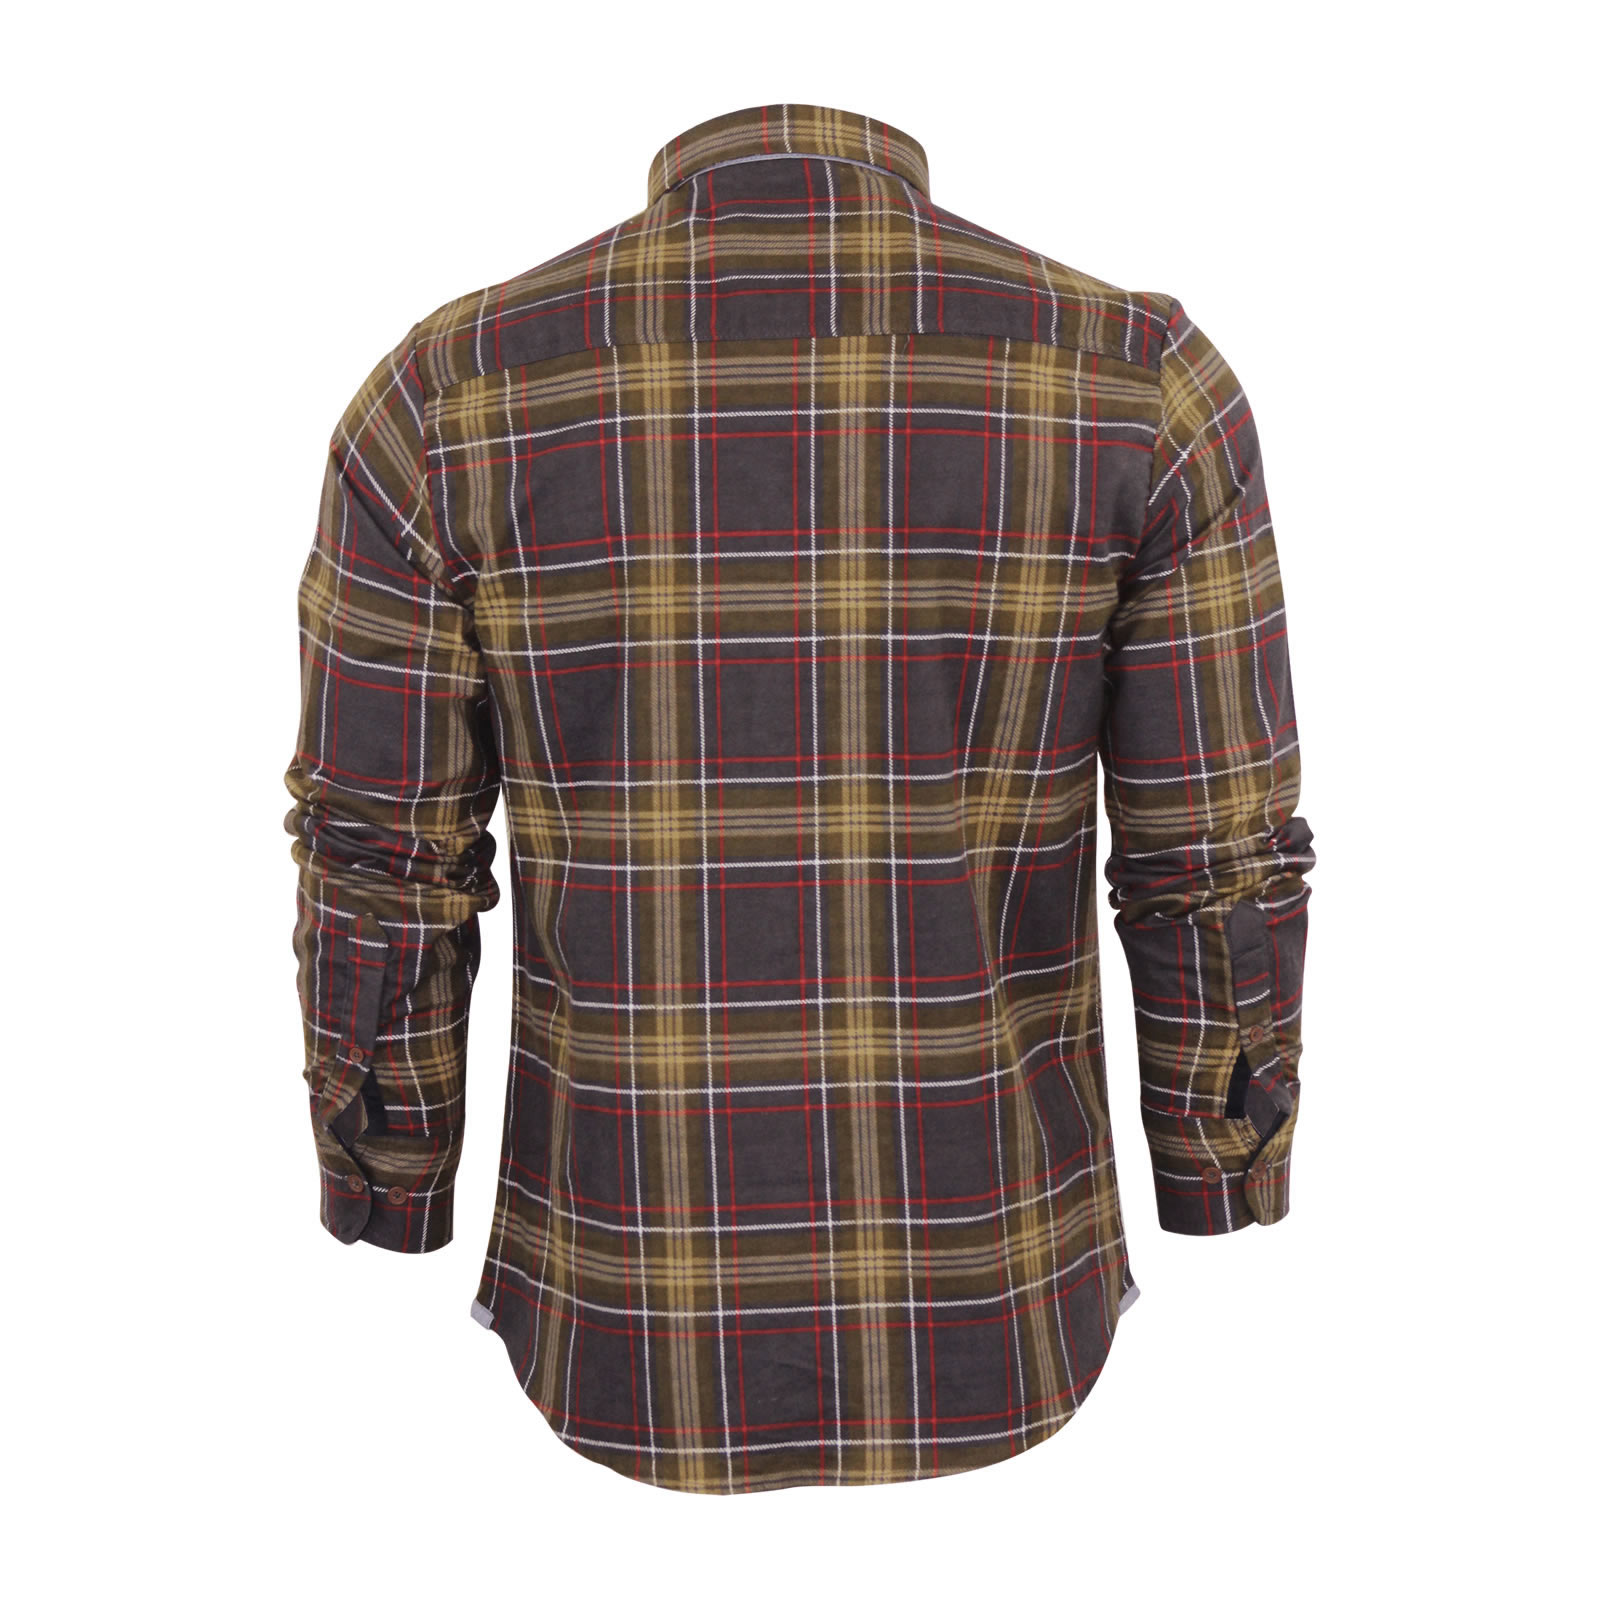 Mens-Check-Shirt-Brave-Soul-Edvard-Flannel-Brushed-Cotton-Long-Sleeve-Casual-Top thumbnail 3